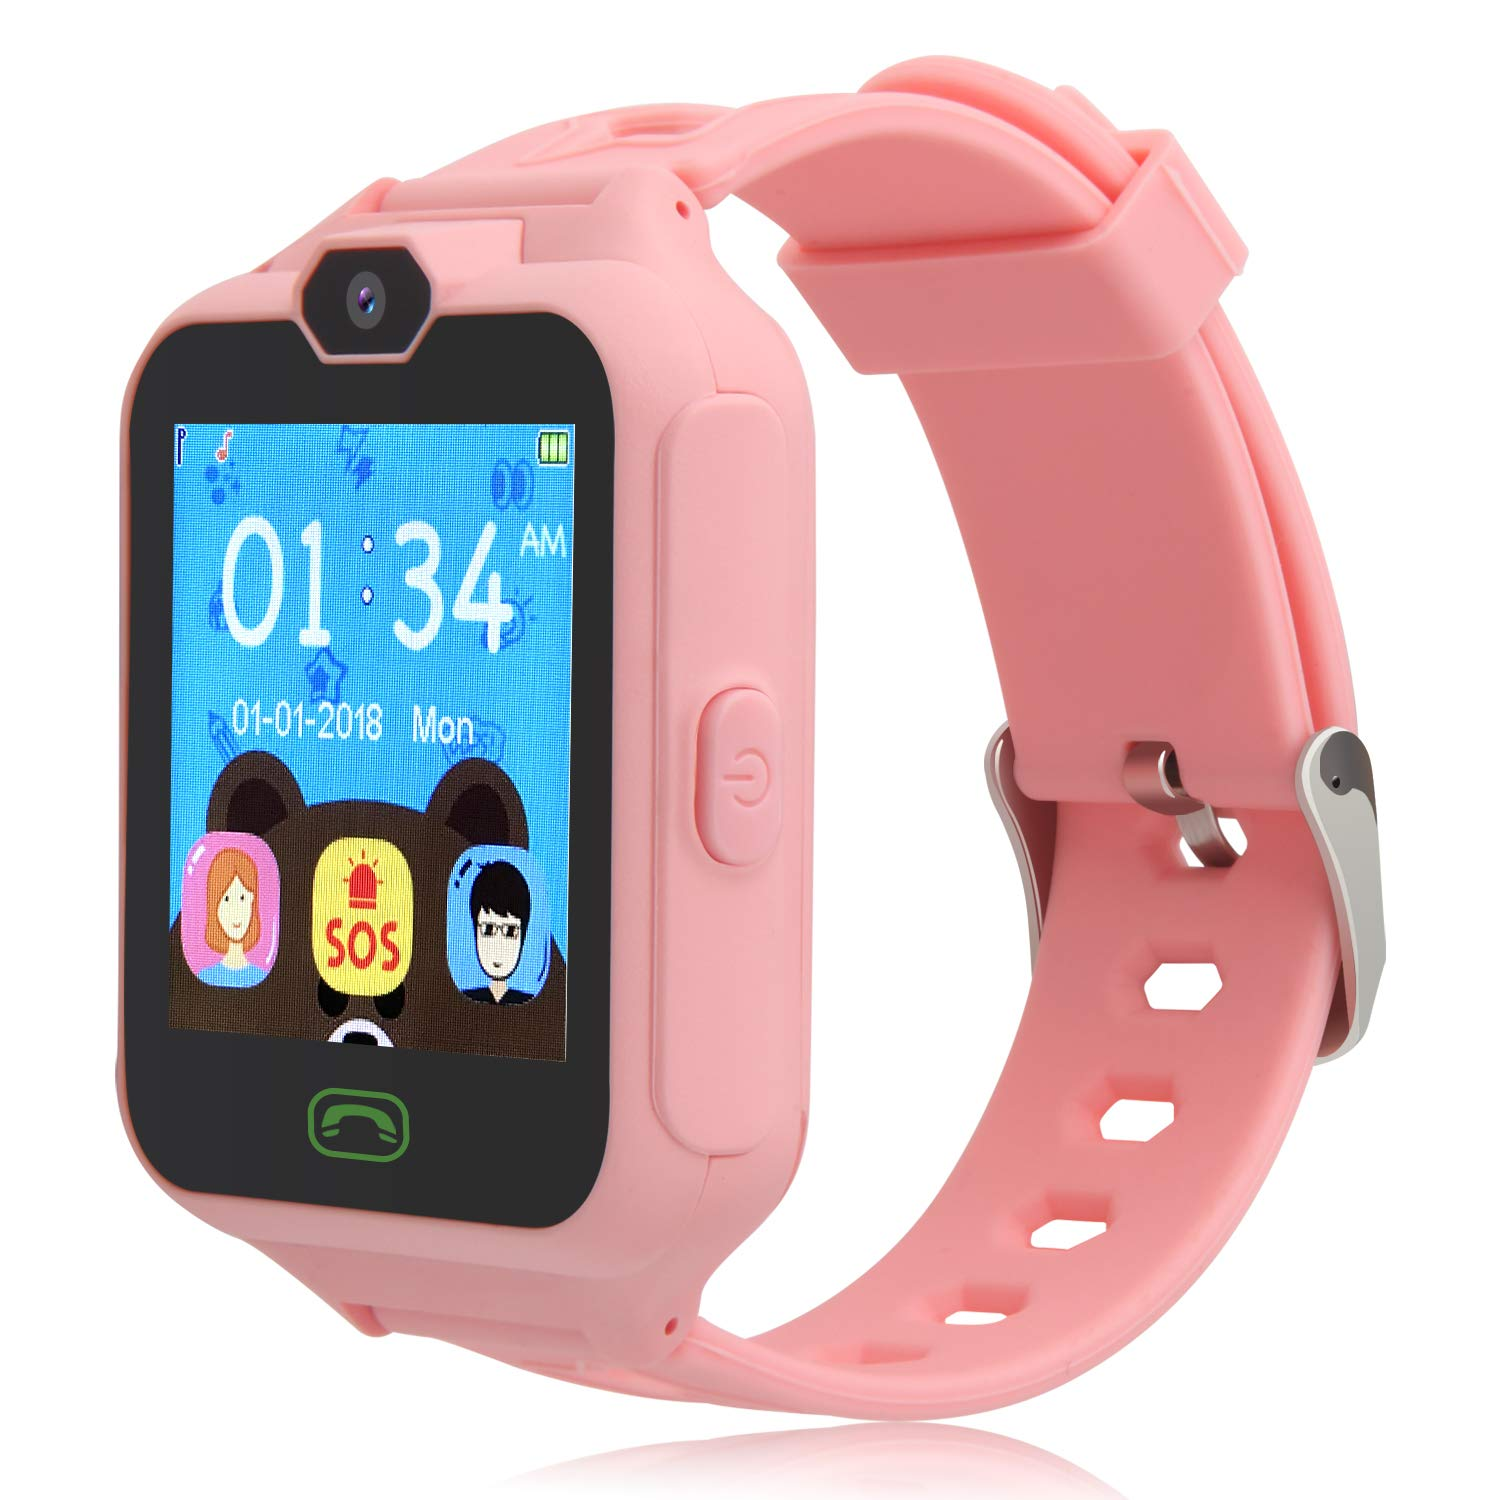 HSX_Z Phone Watch for Kids Smart Watch